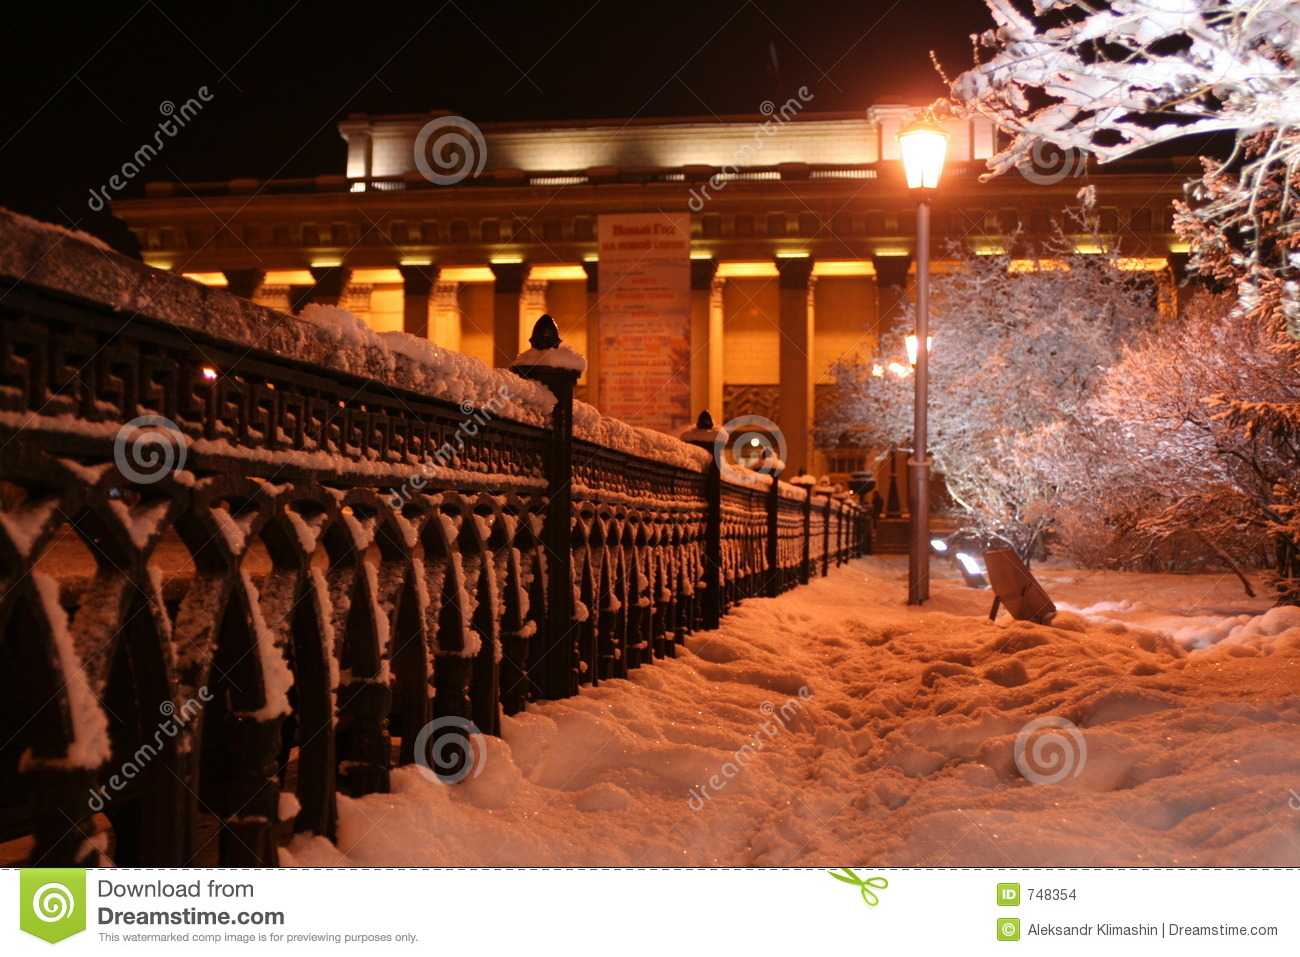 Novosibirsk opera theatre in the winter